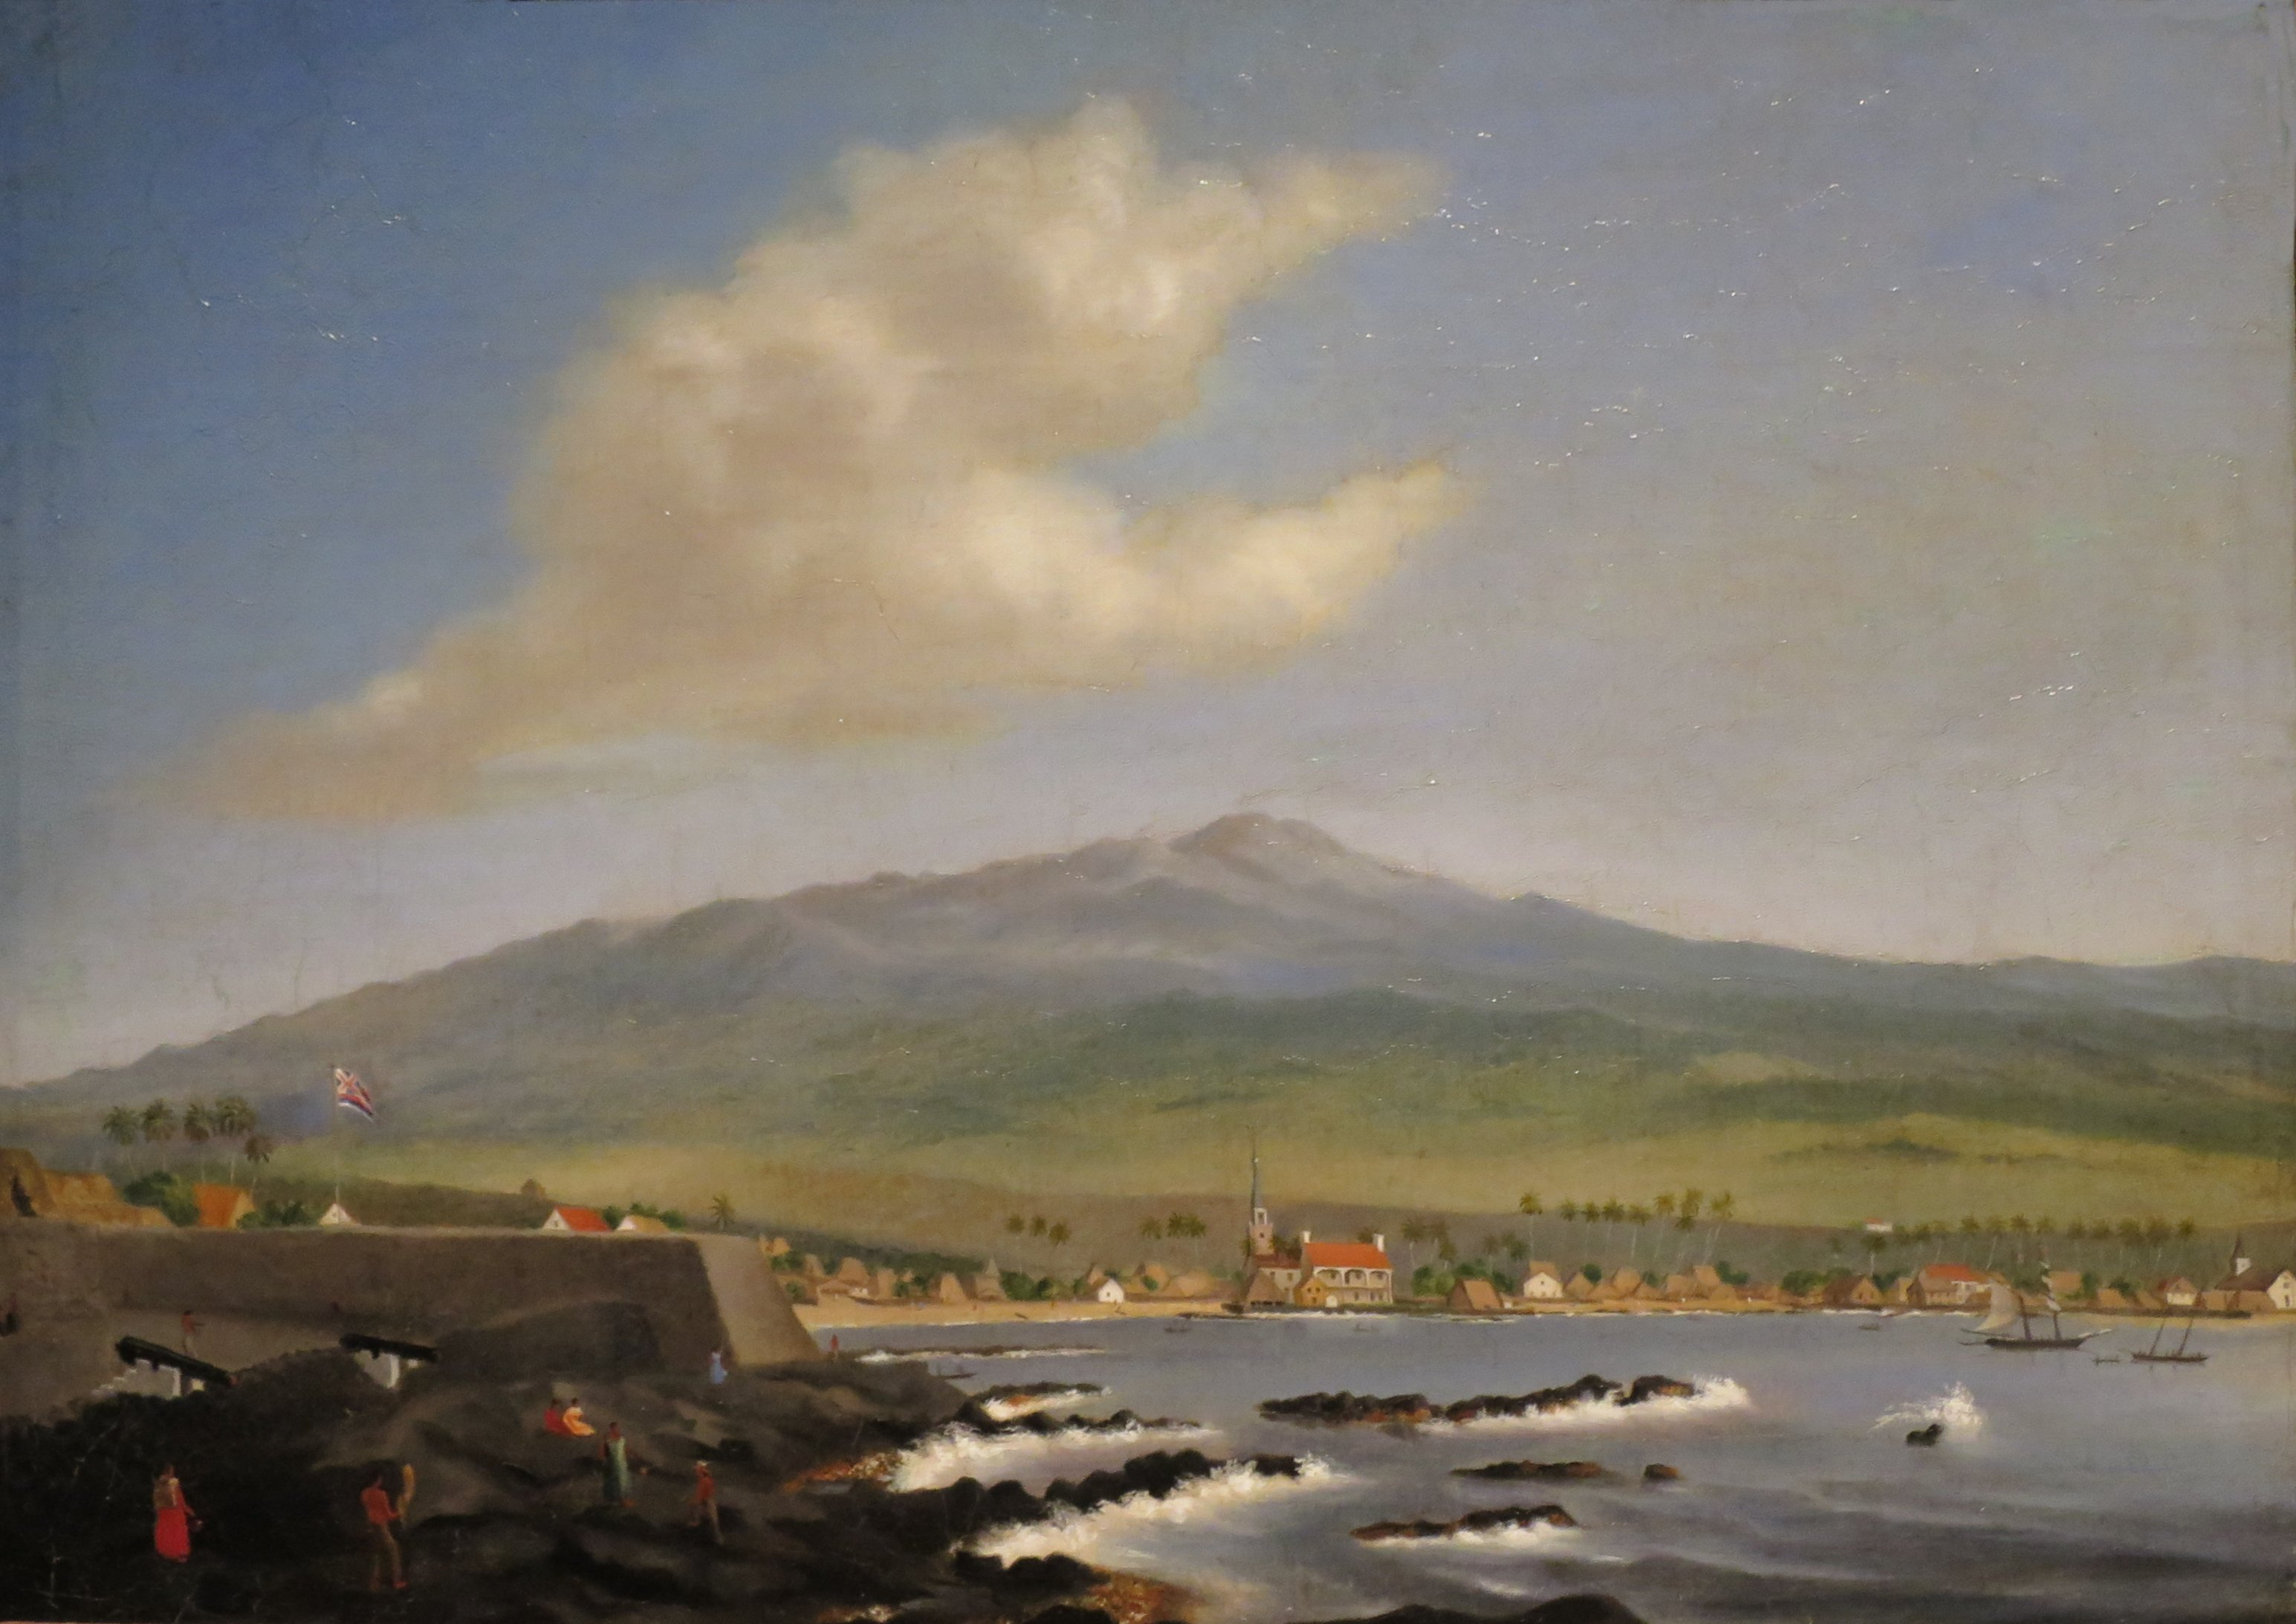 File:James Gay Sawkins, England, 1806-1878, Kailua-Kona with